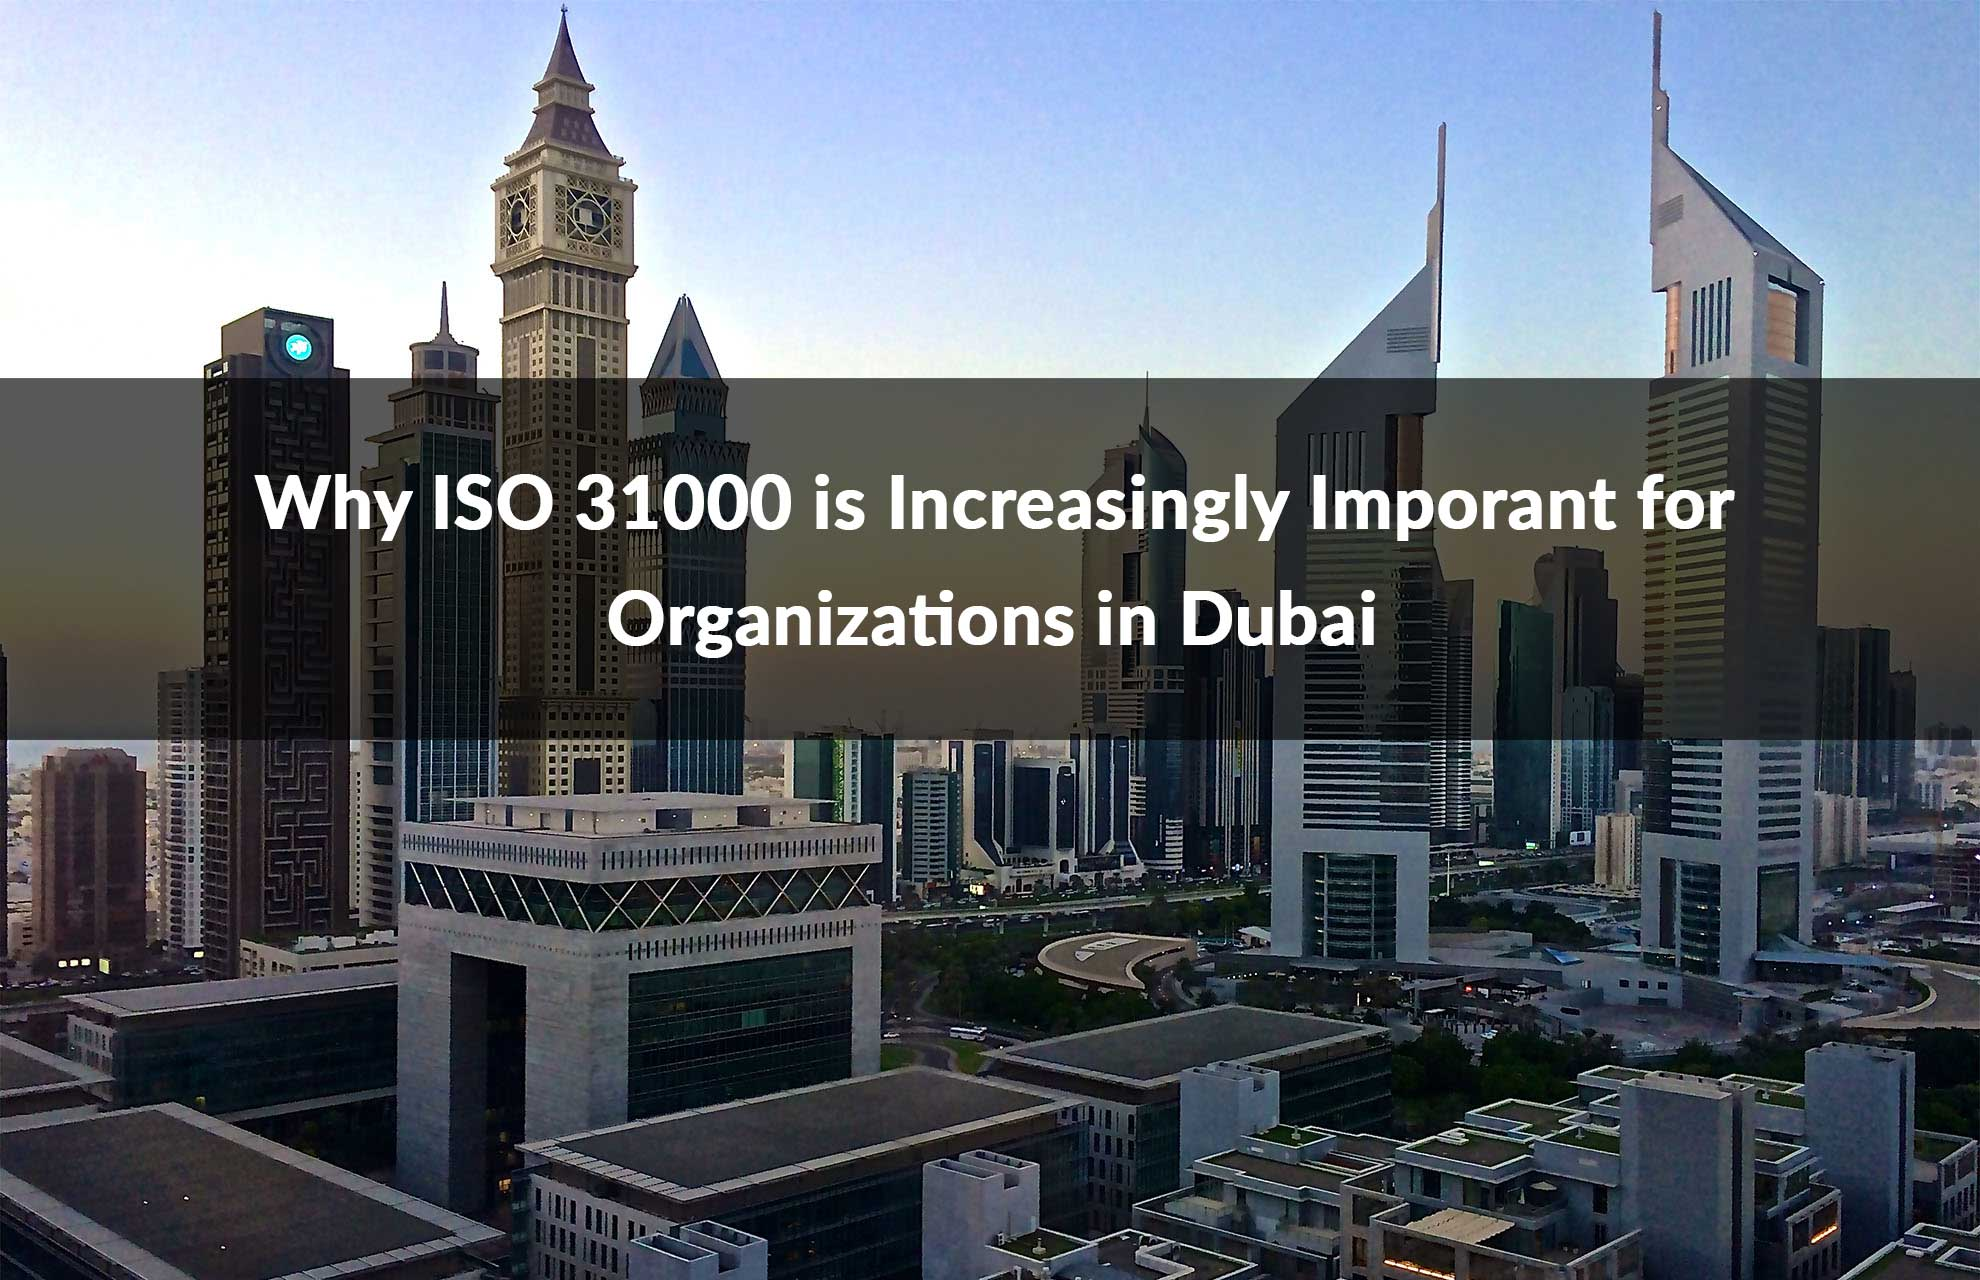 Why ISO 31000 is Increasingly Important for Organizations in Dubai